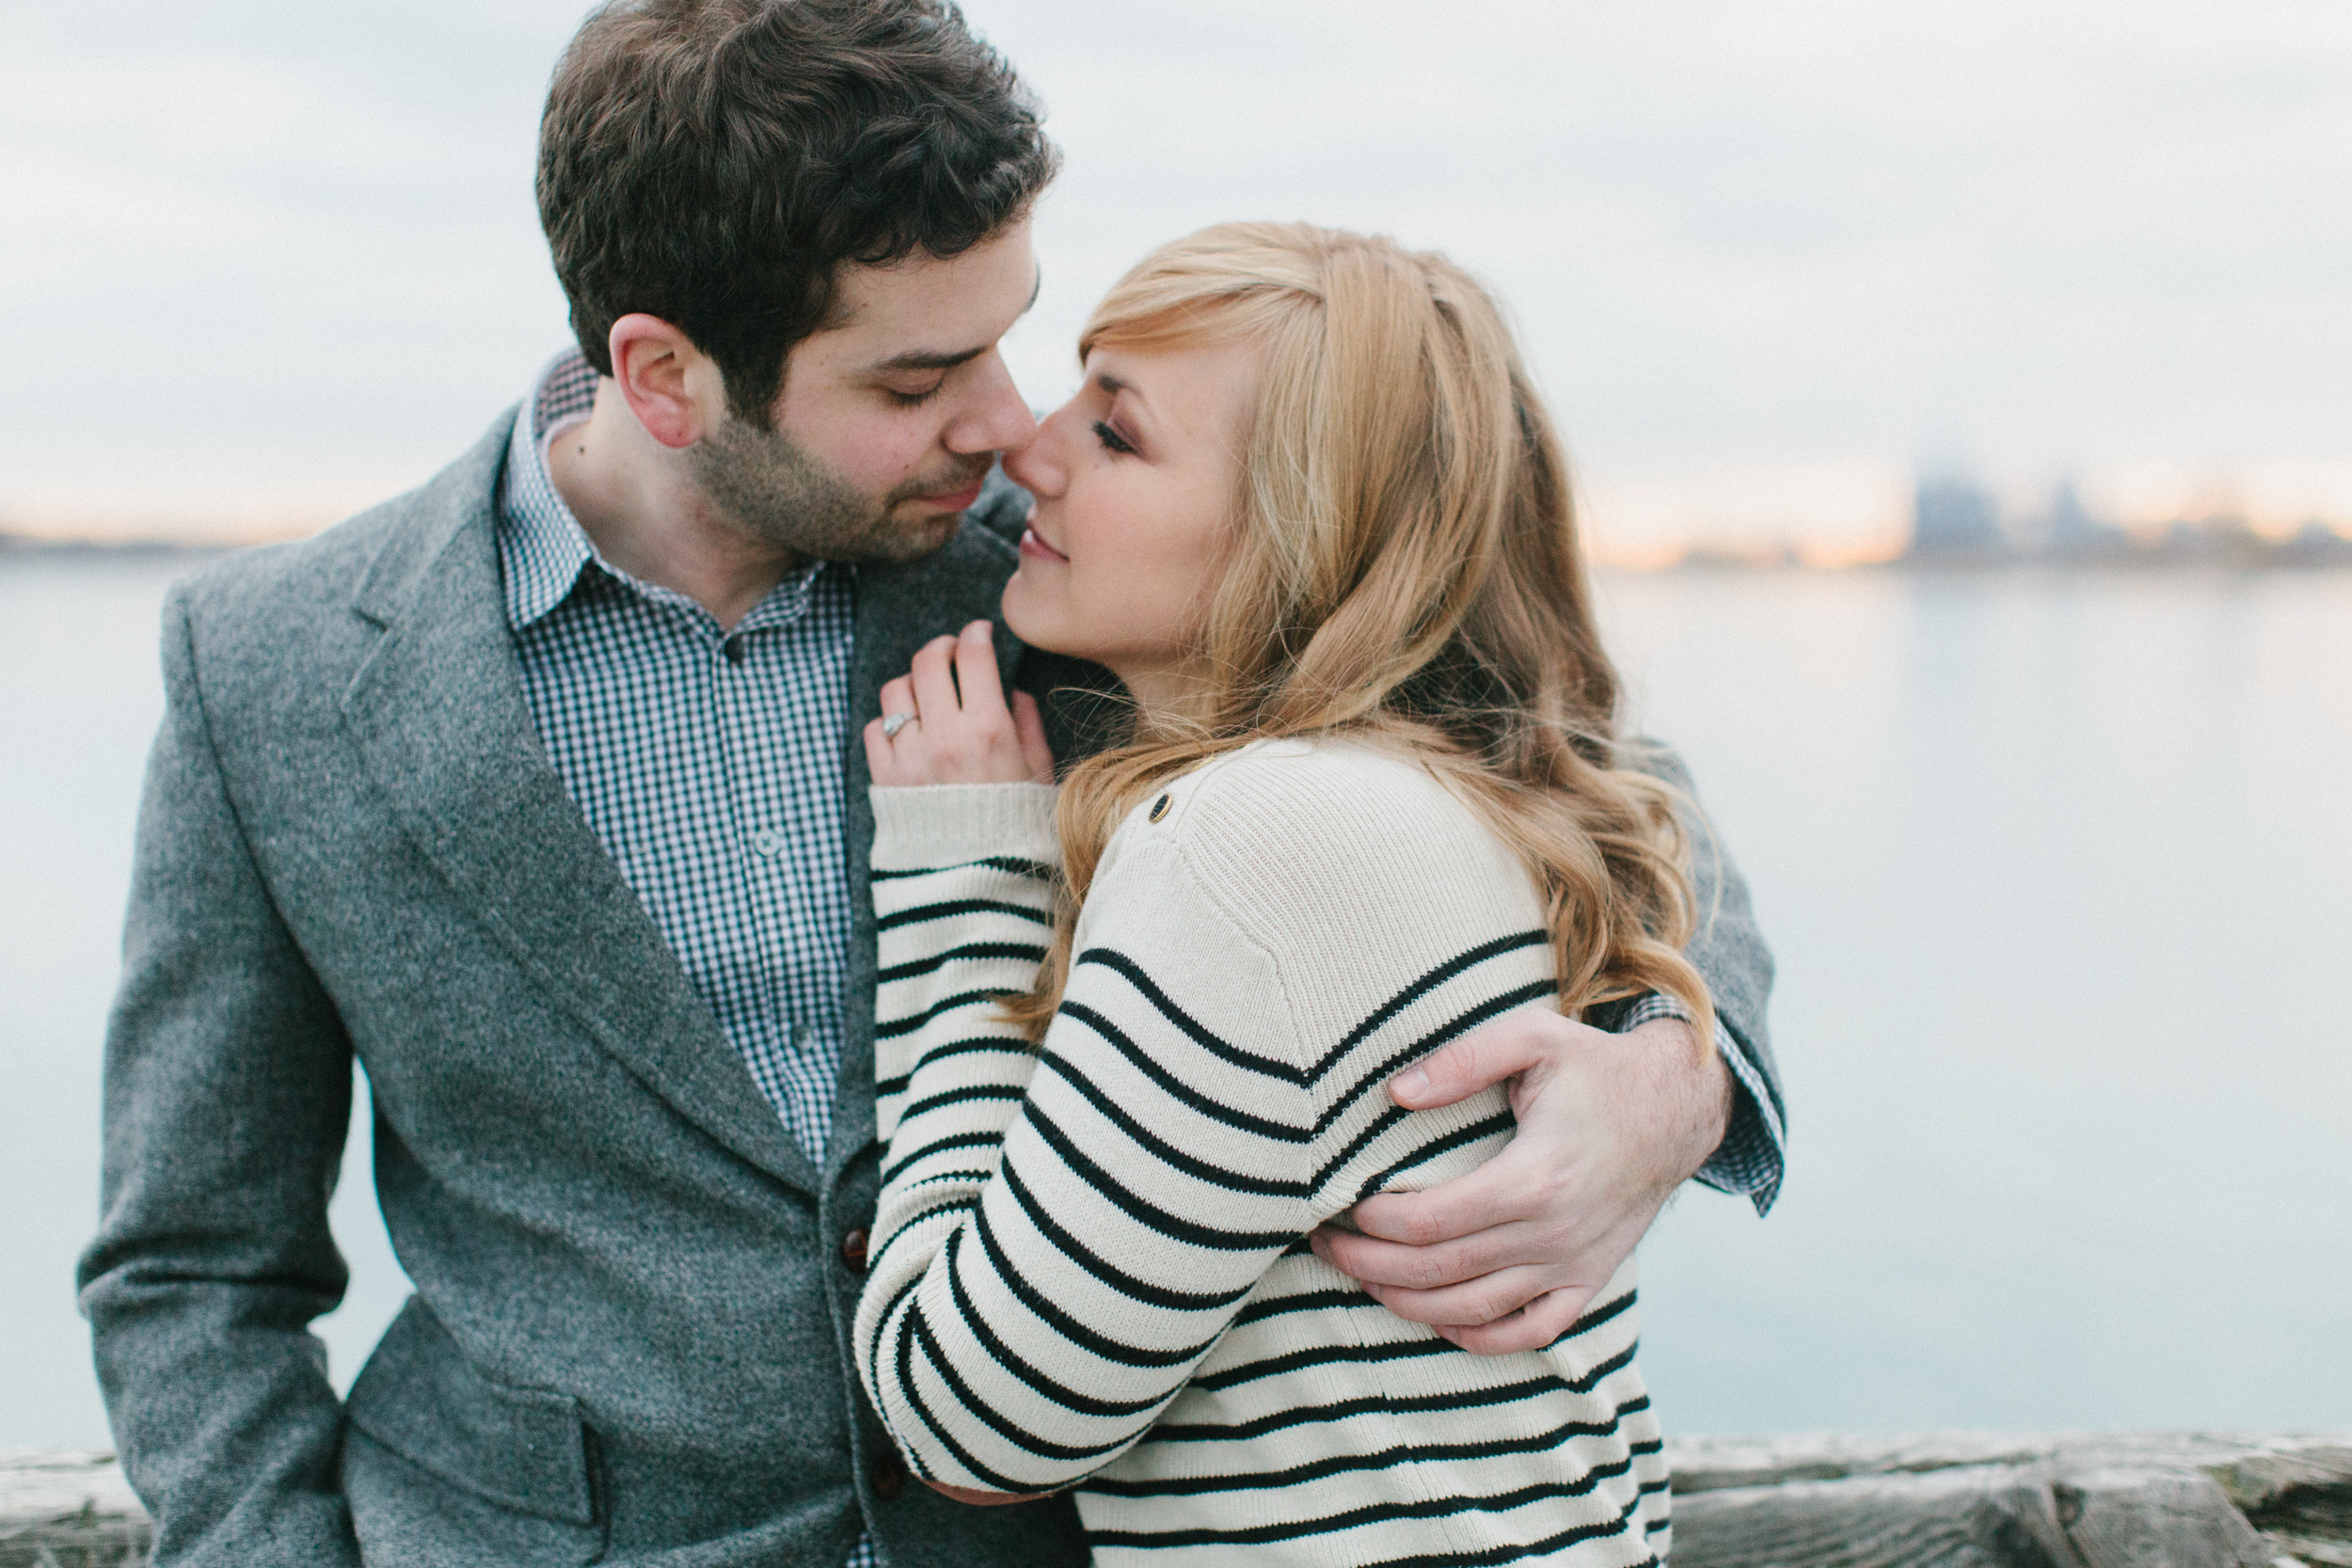 Detroit Michigan Belle Isle Engagement photos Lifestyle Wedding Photographer Mae Stier Candid Photography-033.jpg